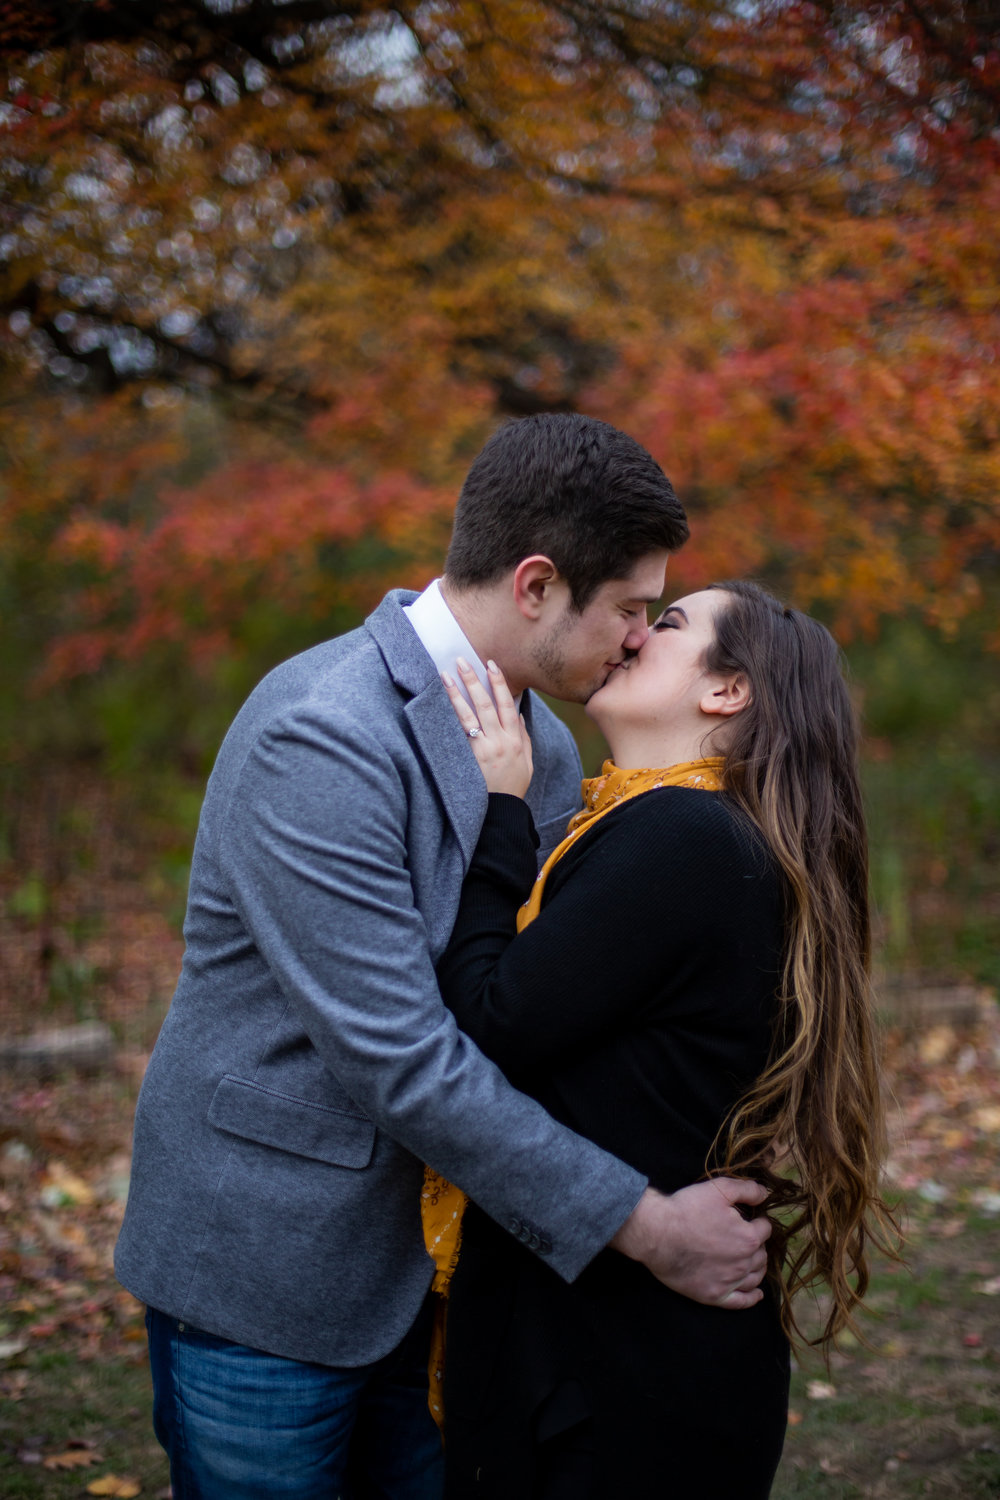 Kate-Alison-Photography-Prospect-Park-Brooklyn-Engagement-Session-Jenna-James-82.jpg